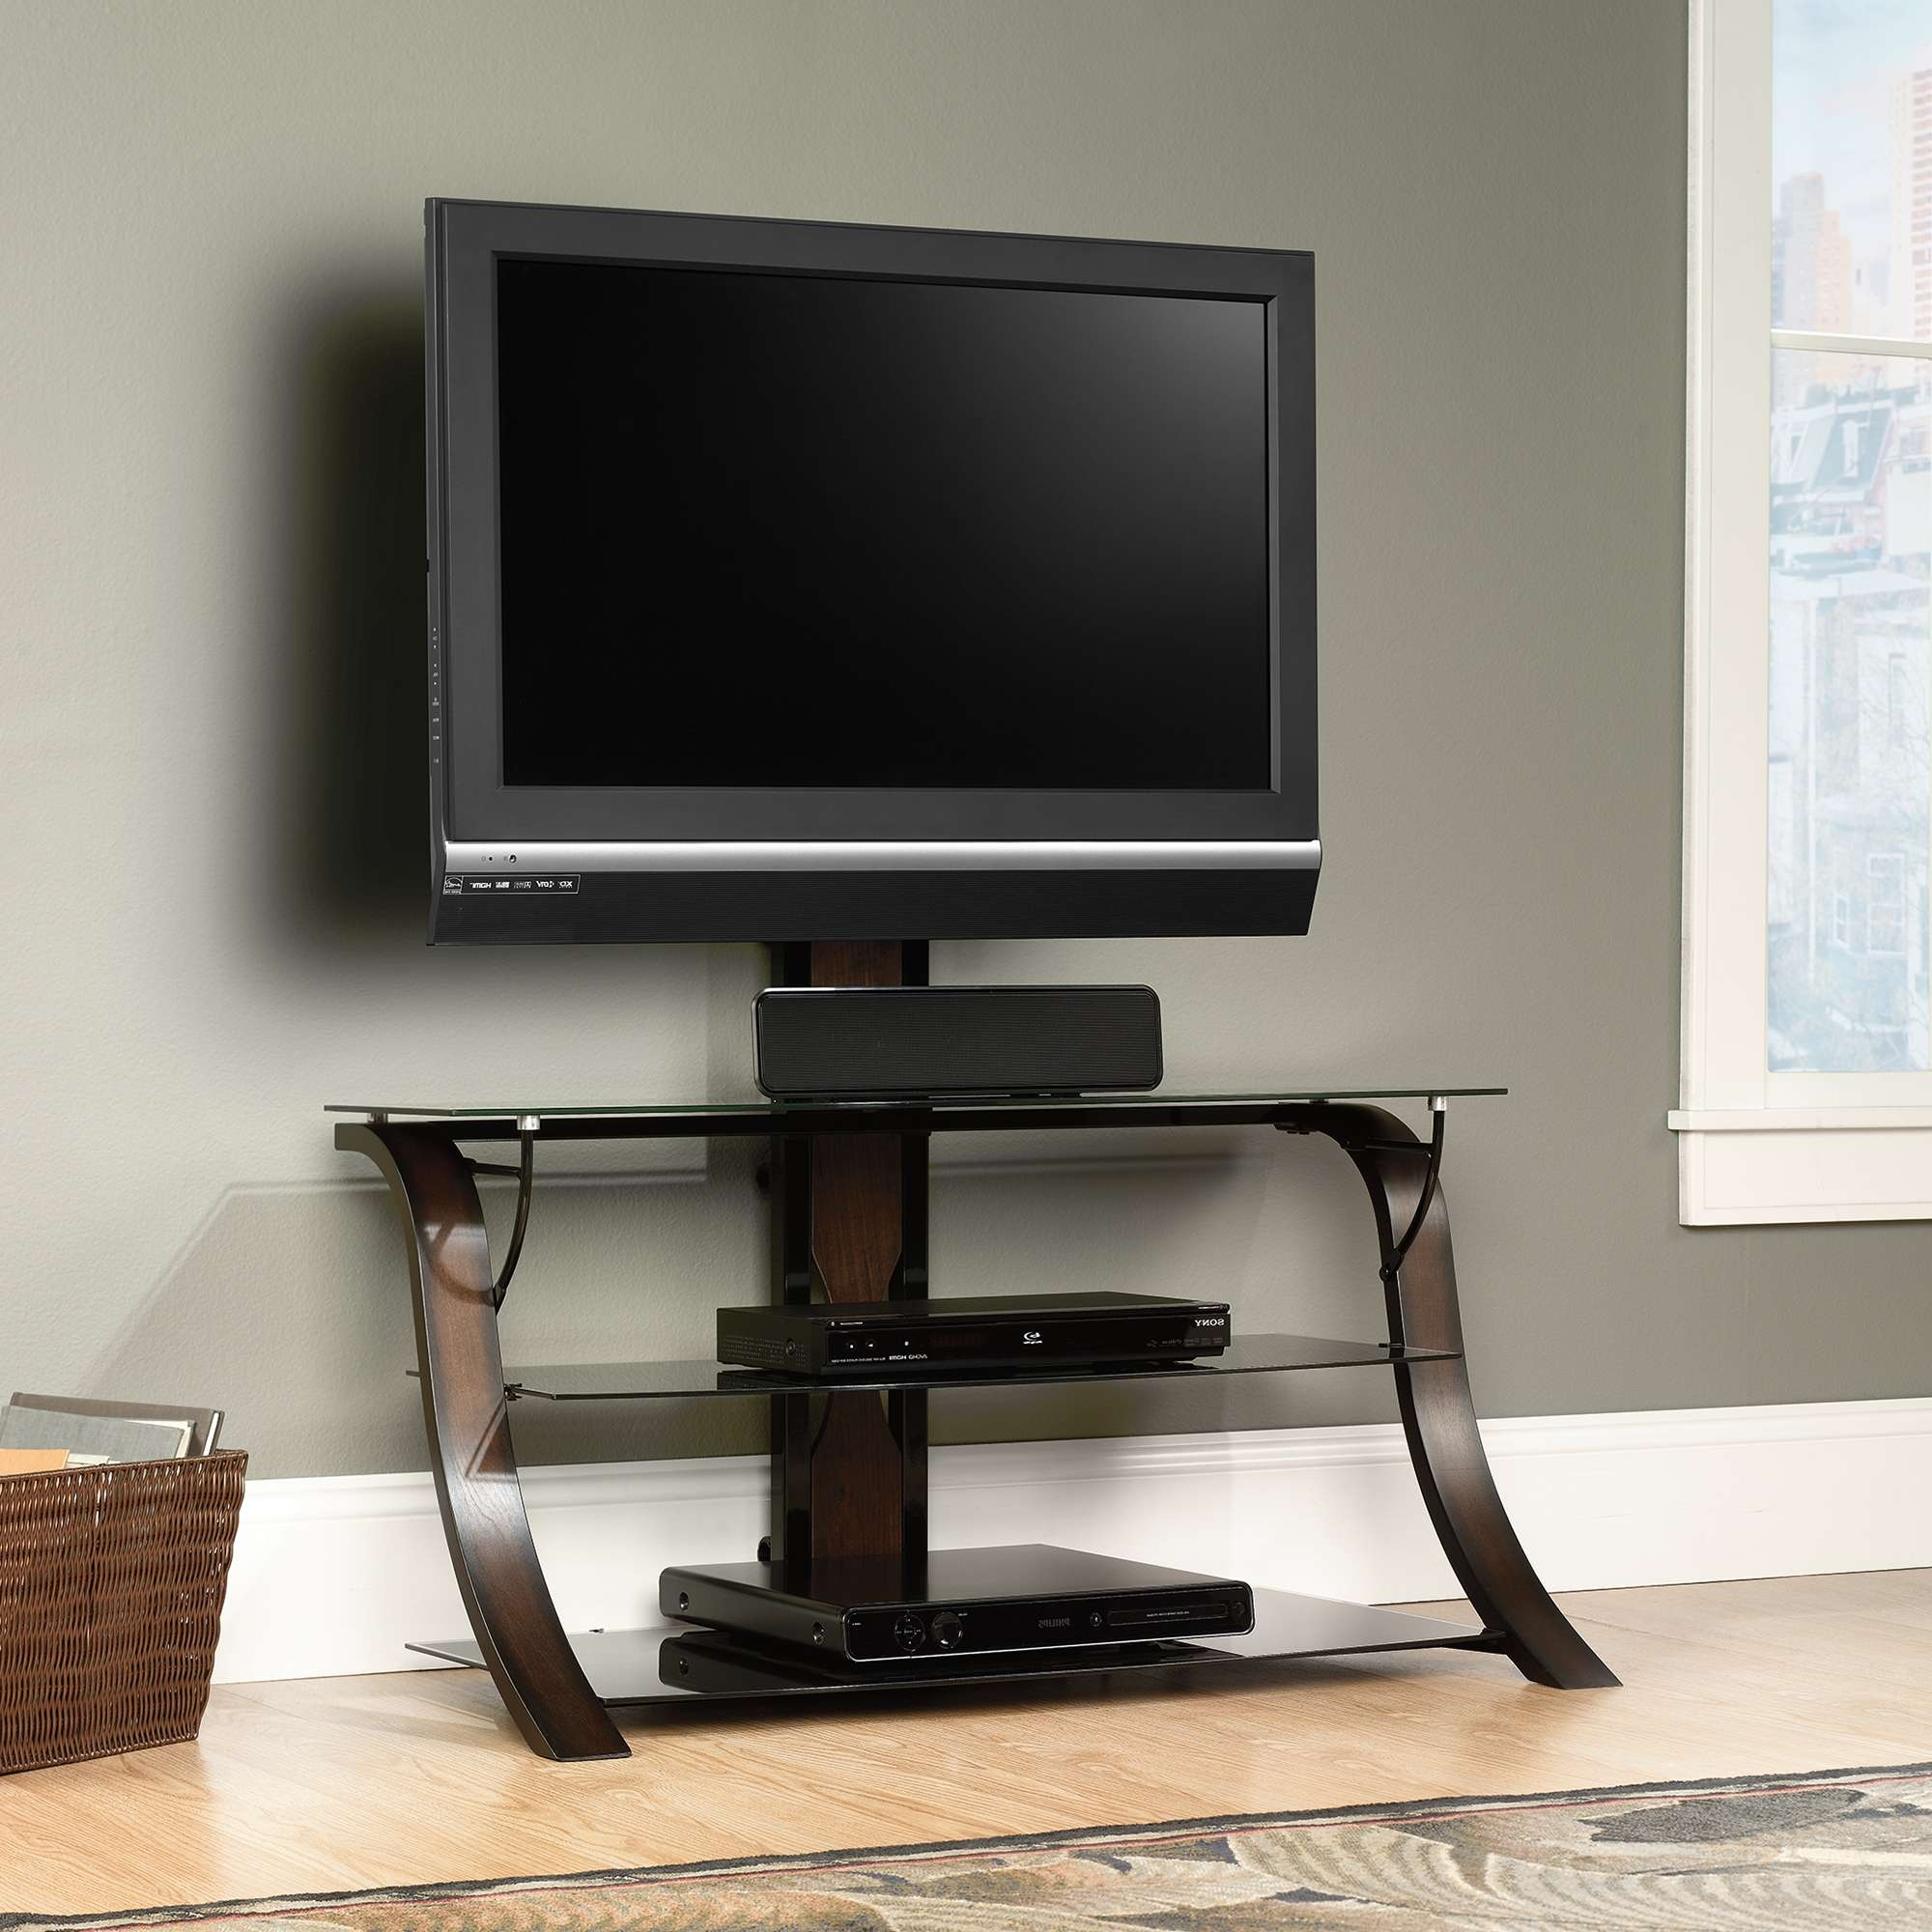 Wood Tv Stand Withnt Furnitures Flat Screen Standsntswoodnts For Regarding Wood Tv Stands With Swivel Mount (View 14 of 15)